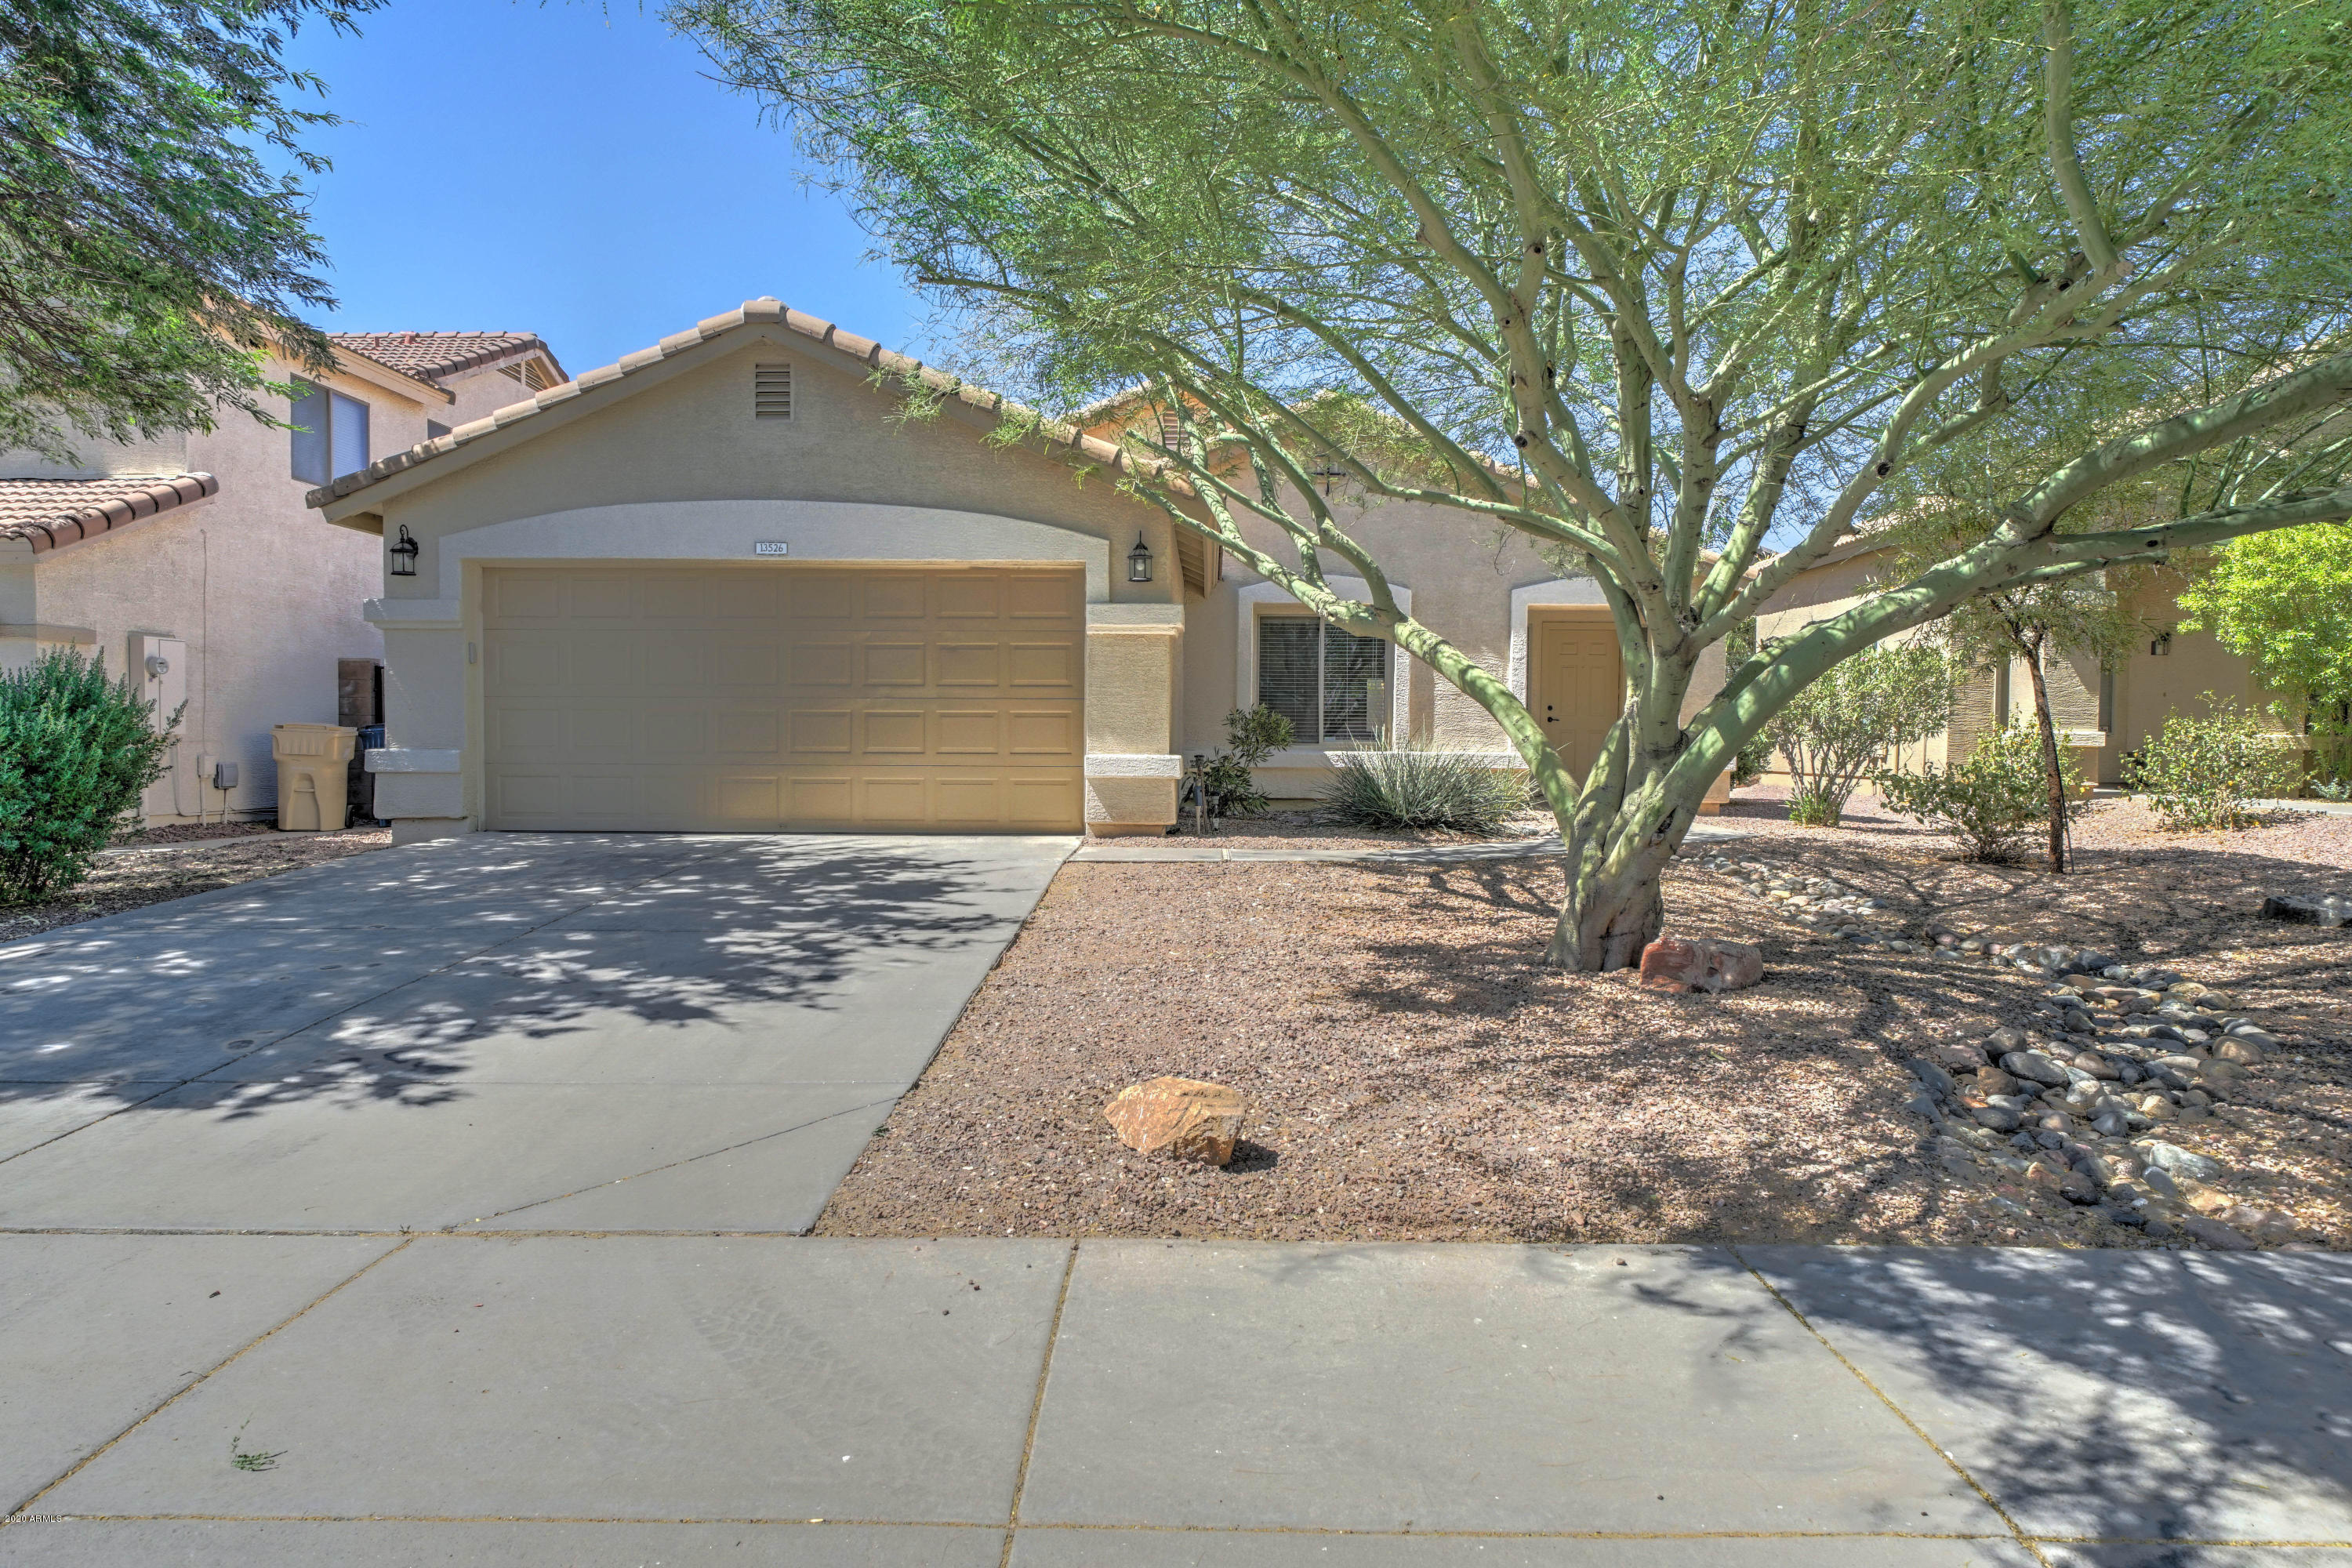 Photo of 13526 W BERRIDGE Lane, Litchfield Park, AZ 85340